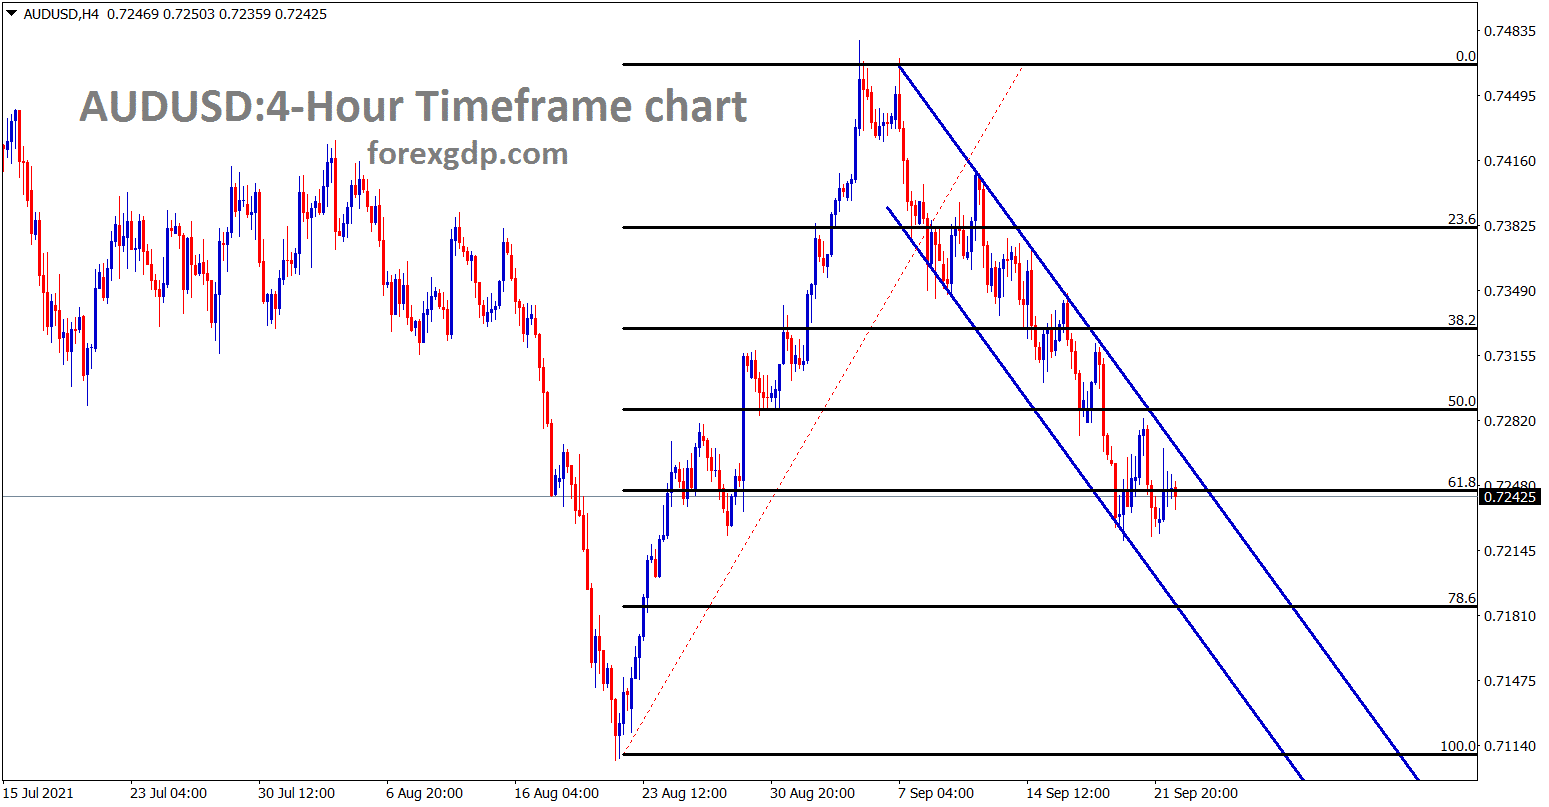 AUDUSD is still moving in a descending channel range made 61.8 retracement